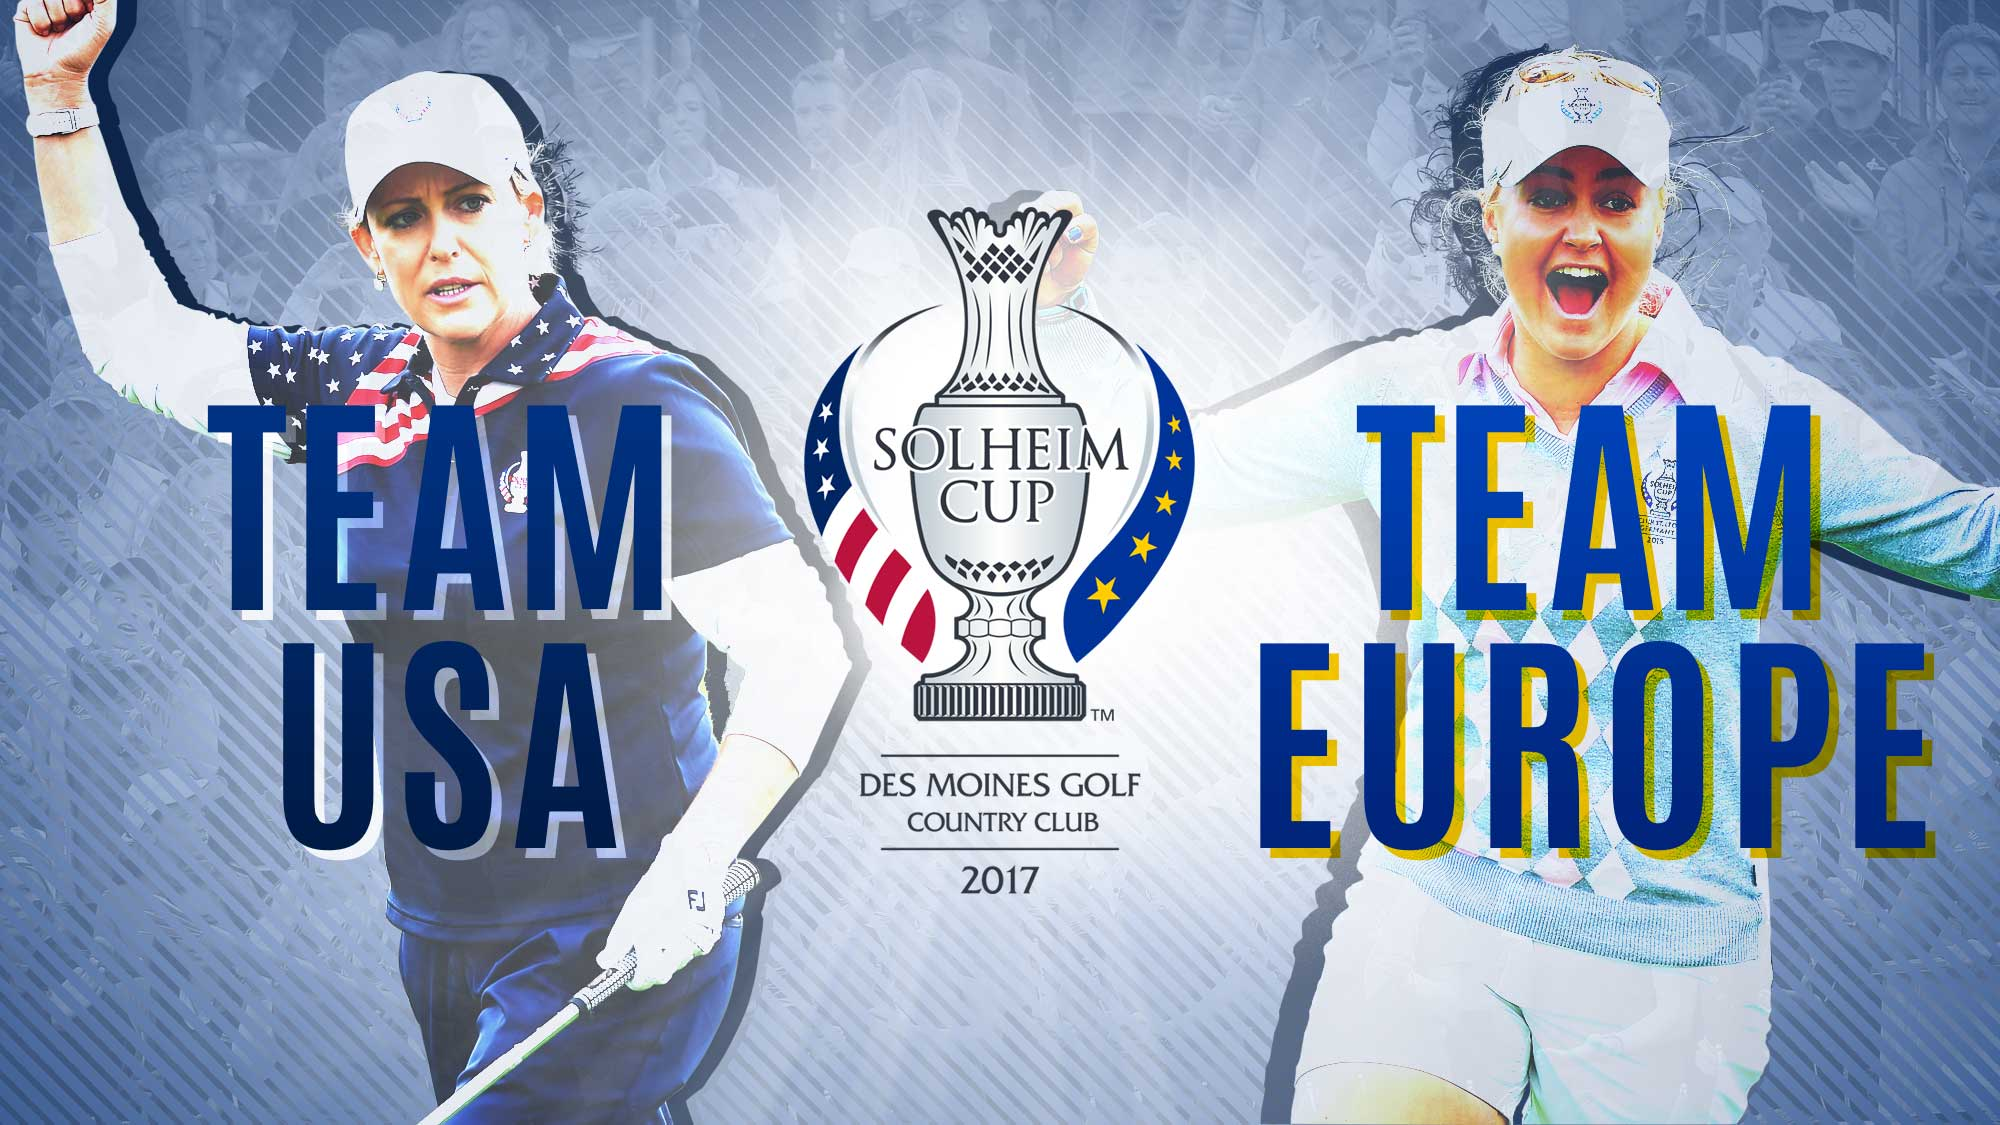 meet the teams competing at the 2017 solheim cup